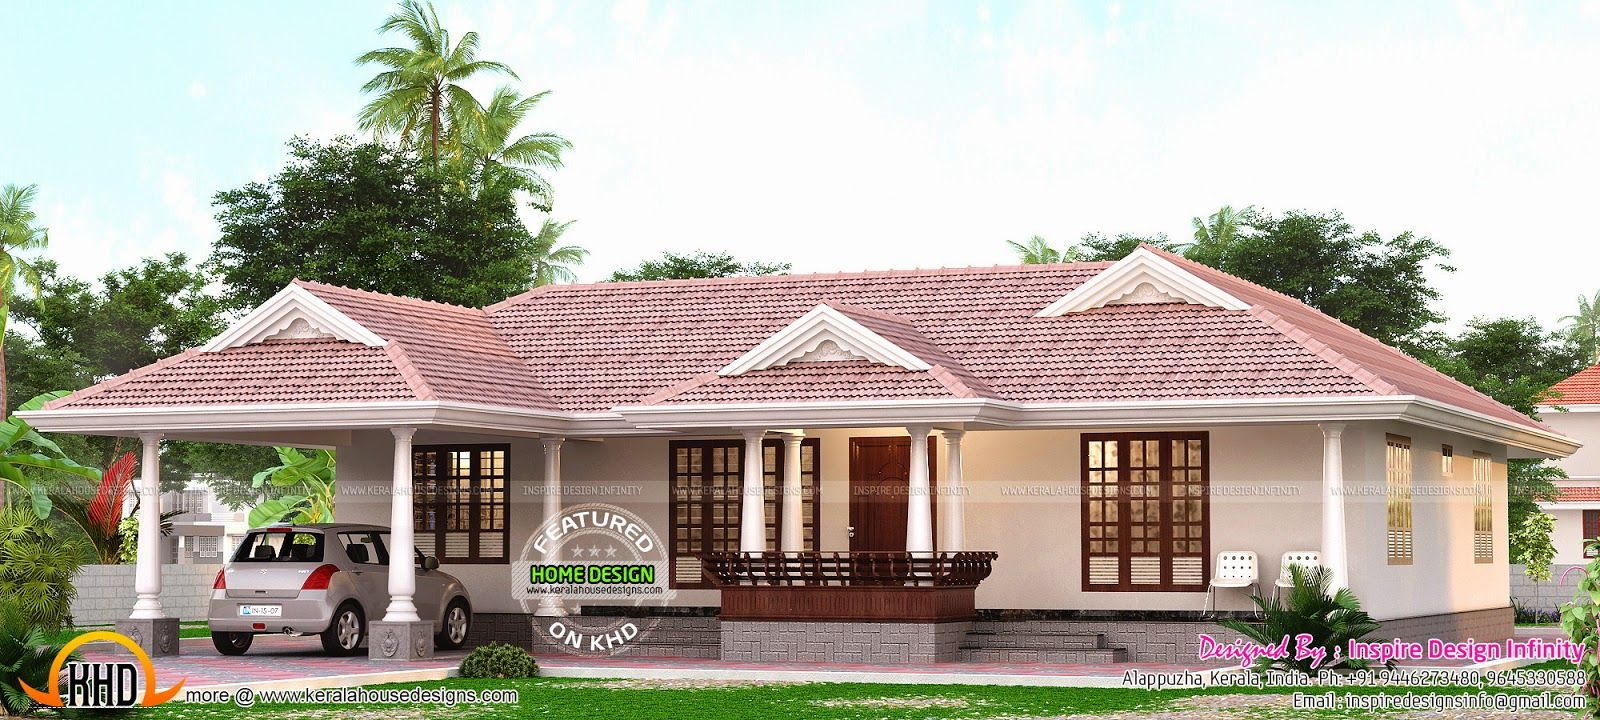 Kerala Model Single Storied Home Kerala House Design Single Floor House Design Kerala Houses